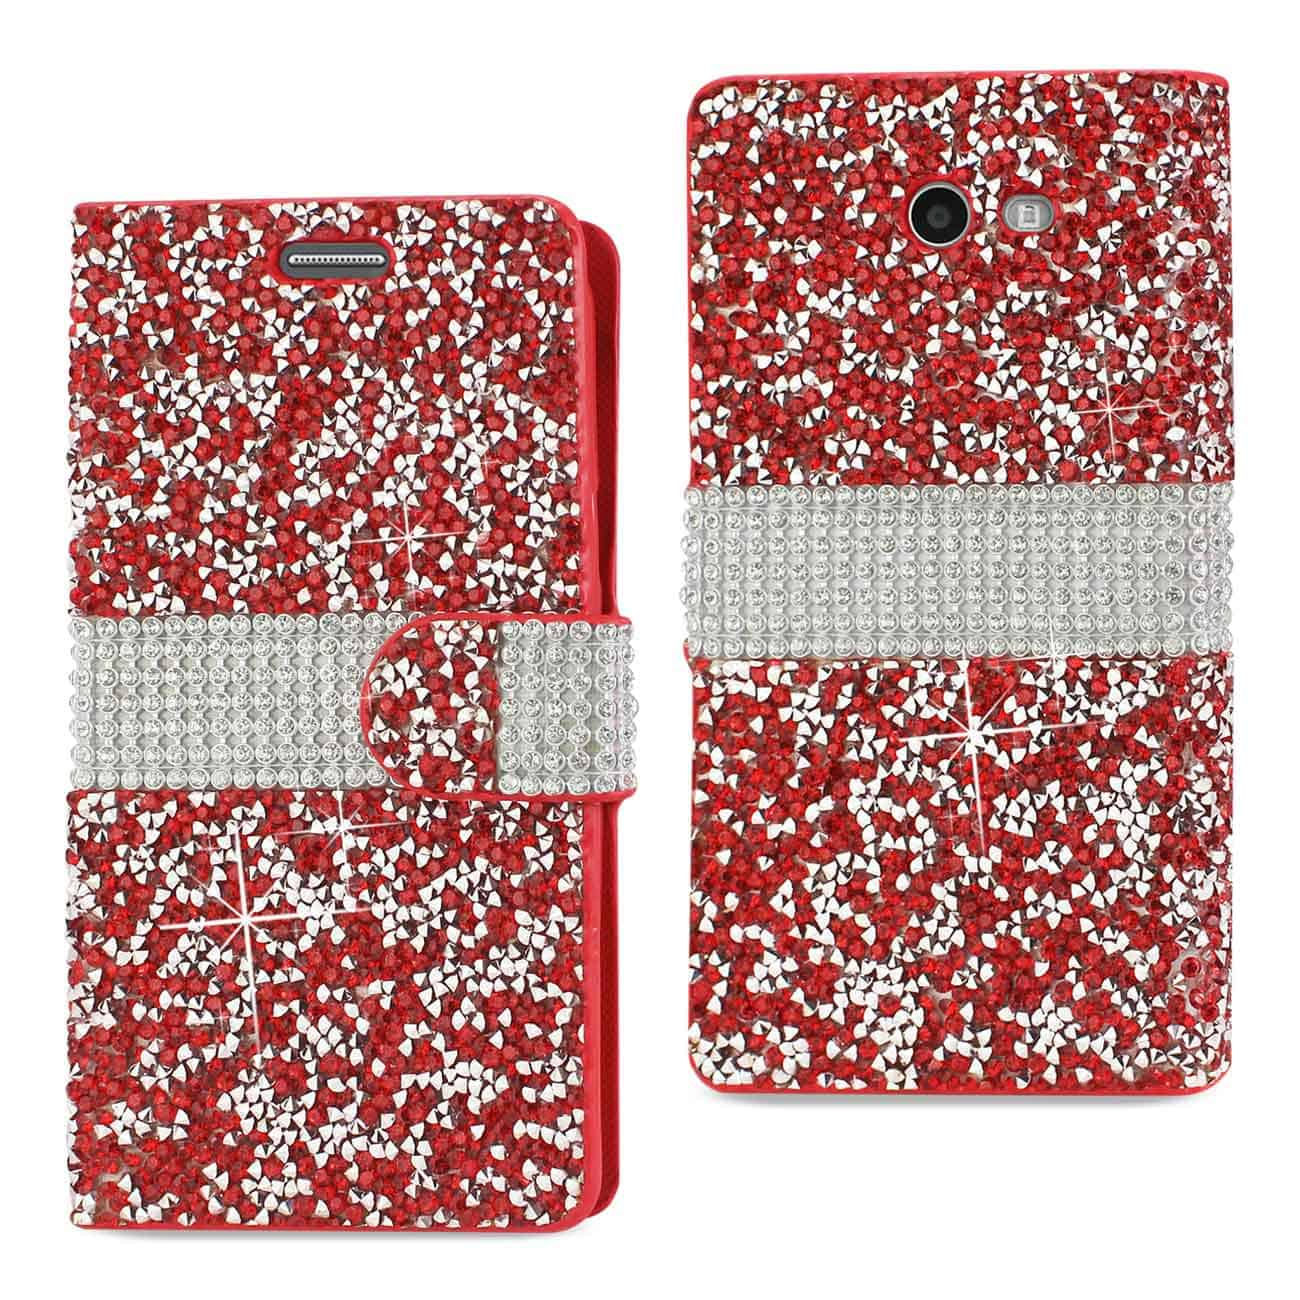 Samsung Galaxy J3 Emerge Diamond Rhinestone Wallet Case In Red